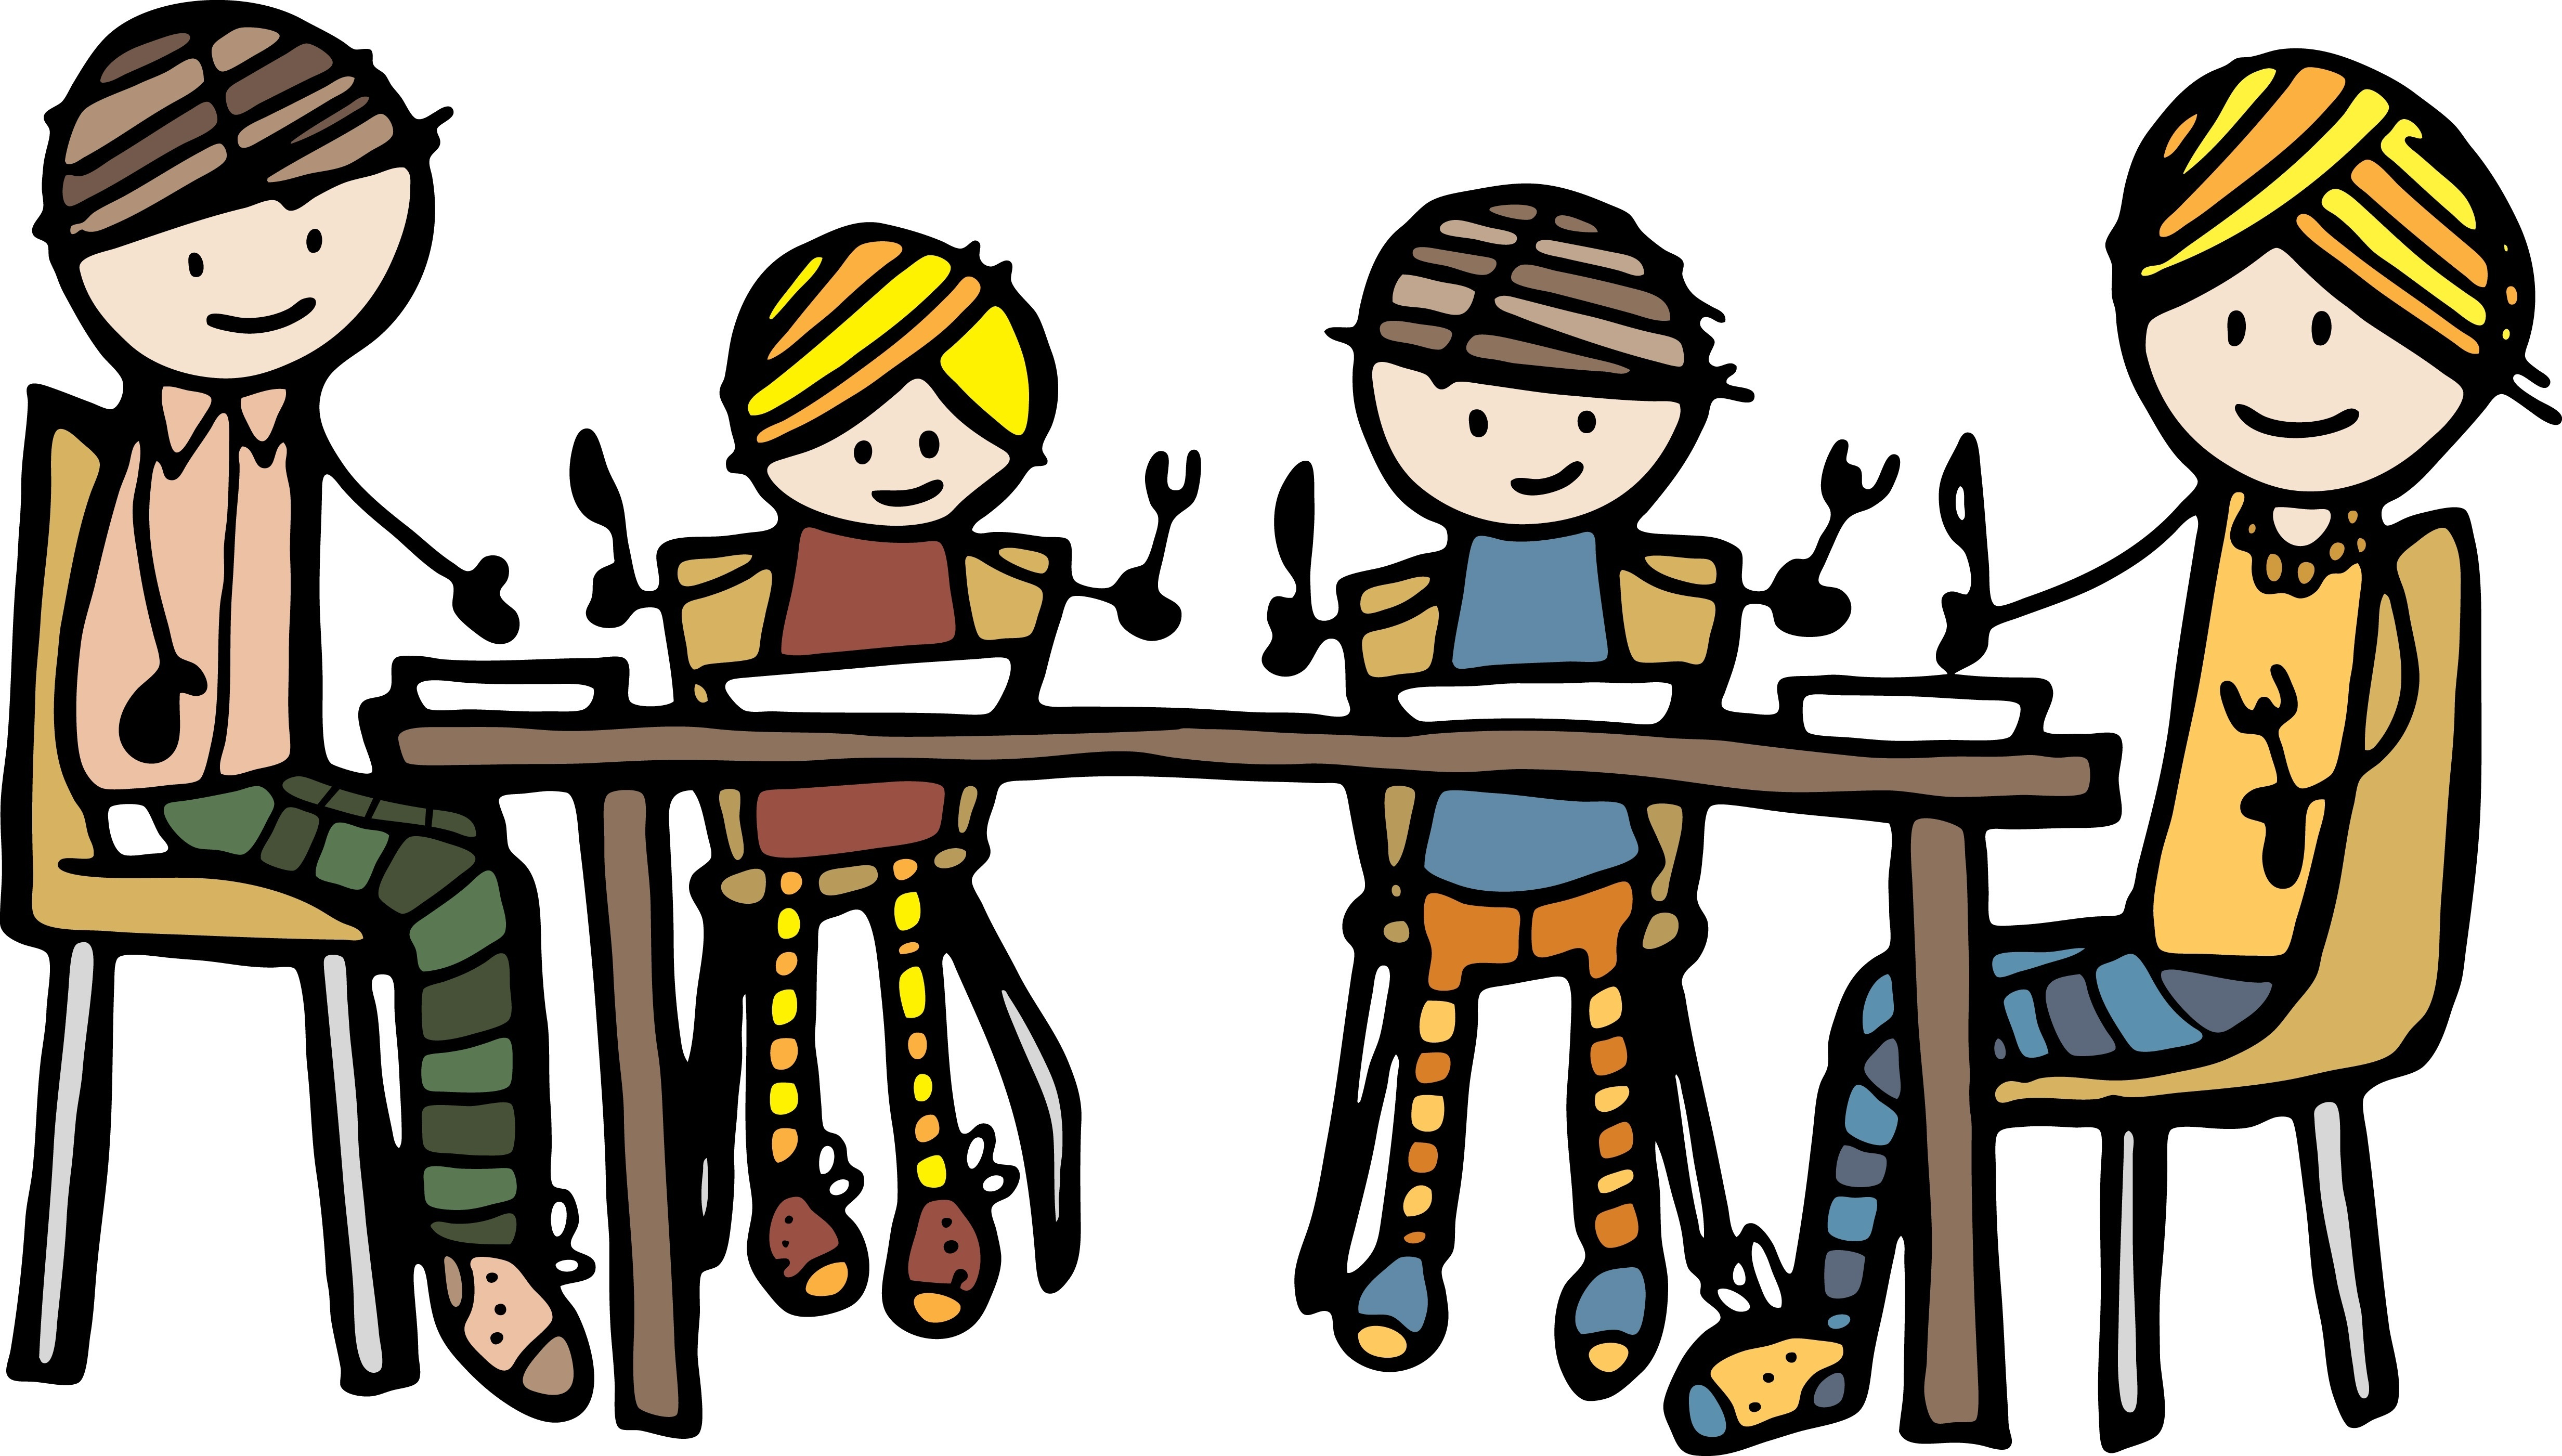 Meal clipart dining. Dinner panda free images